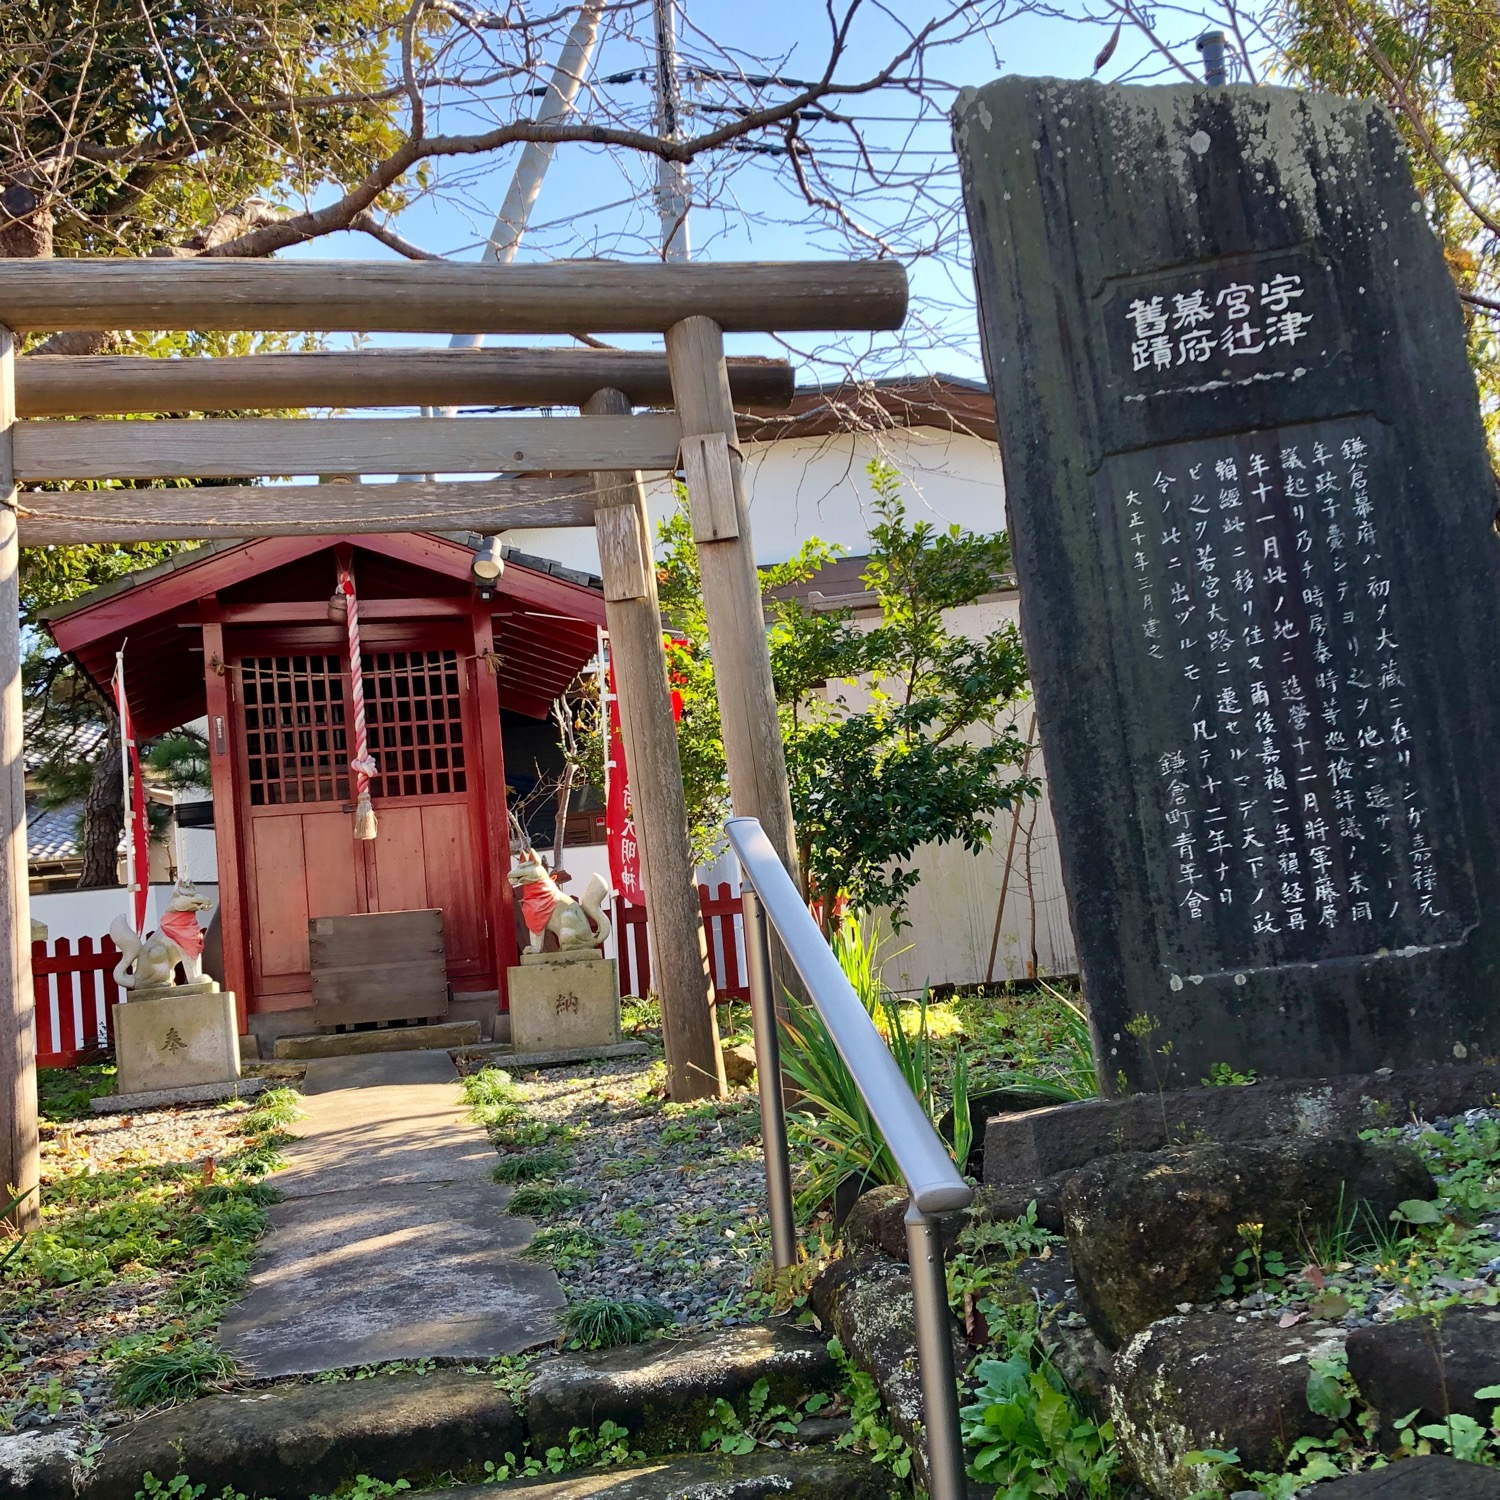 宇津宮辻幕府旧蹟 Utsunomiya Tsuji Shogunate Historic Site